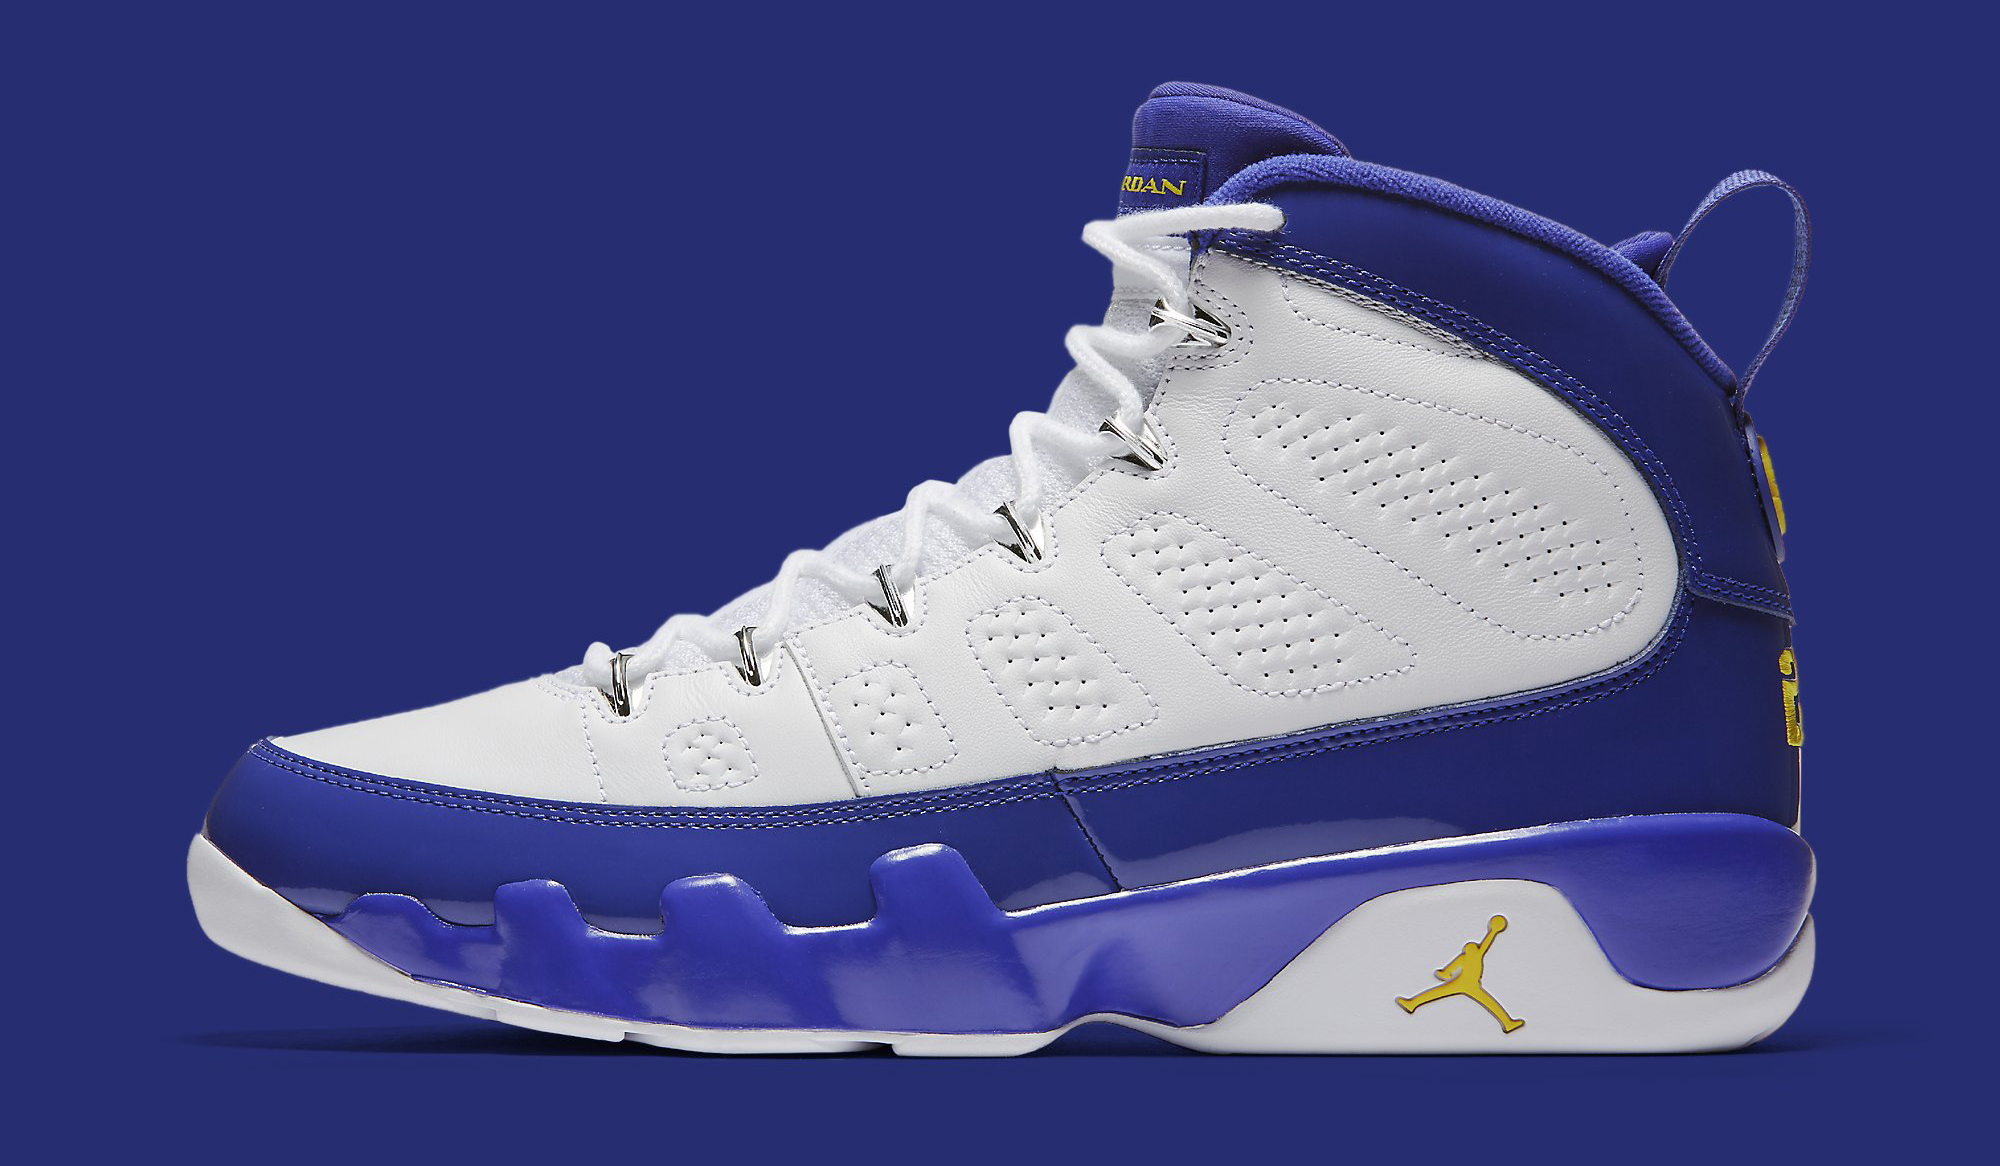 9539592ba3ef Kobe Air Jordan 9 302370-121 Profile